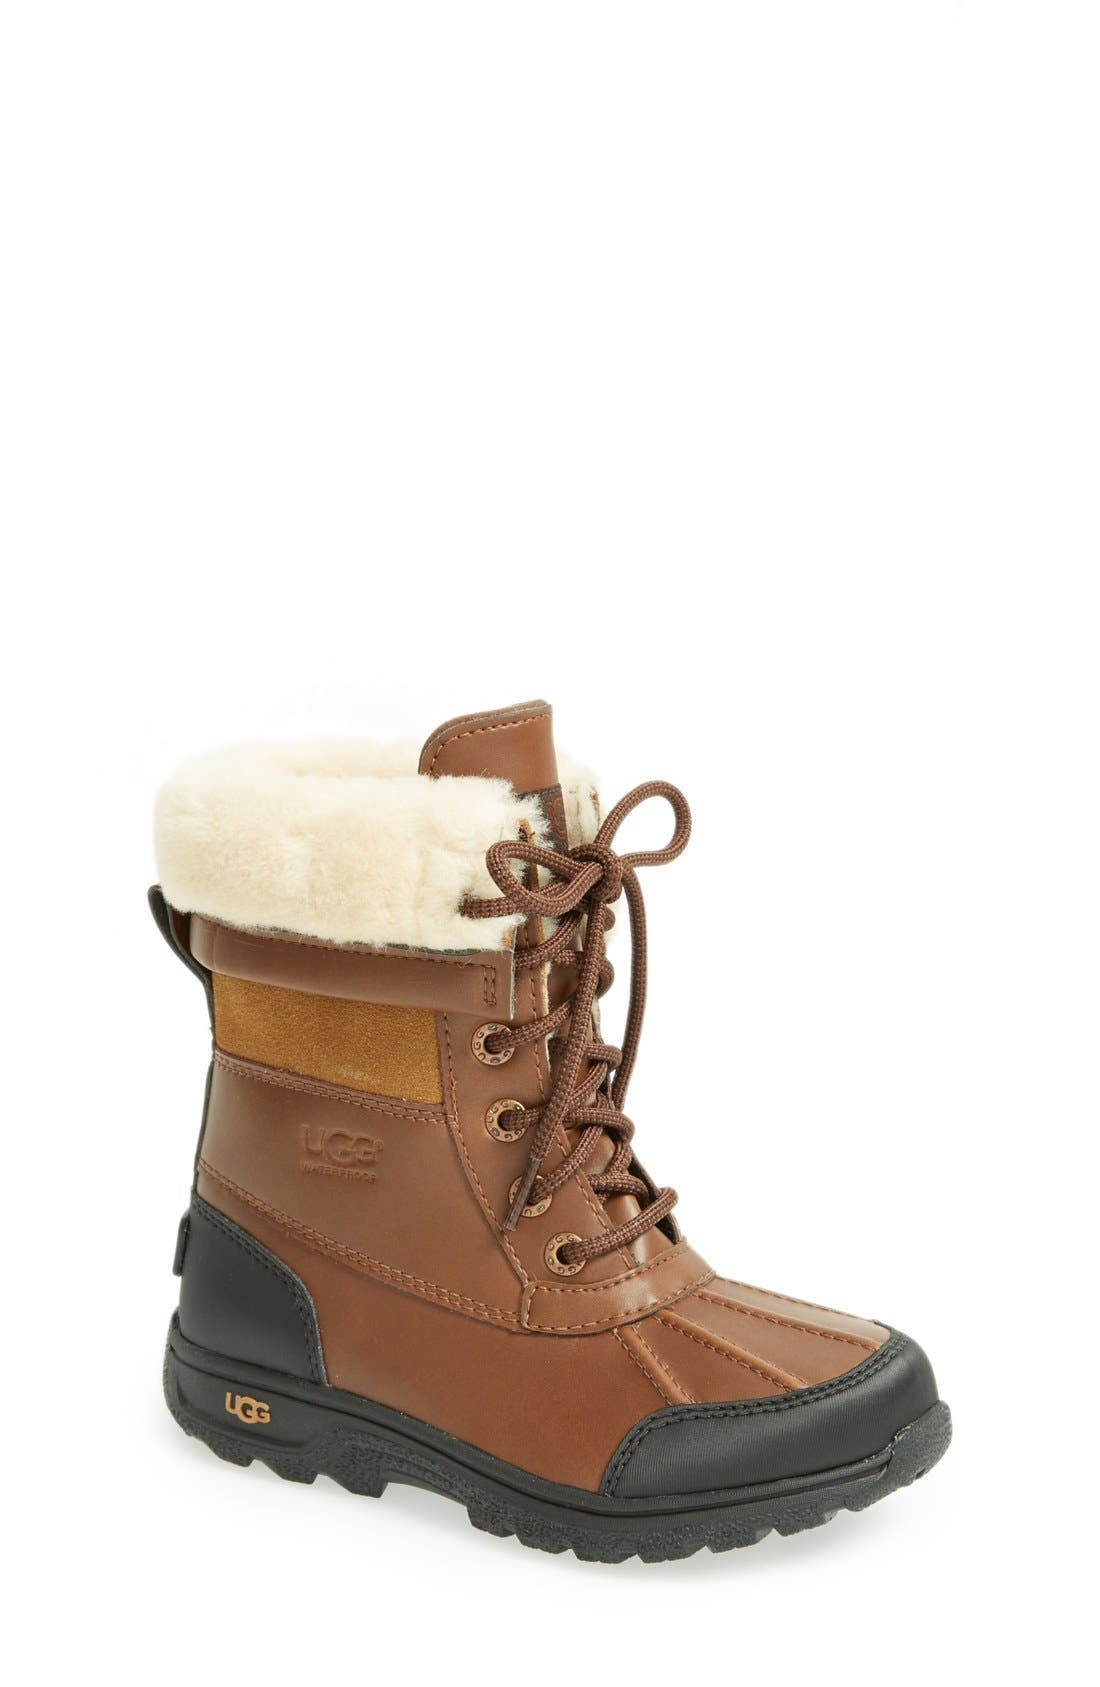 'Butte II' Waterproof Leather Boot,                             Main thumbnail 2, color,